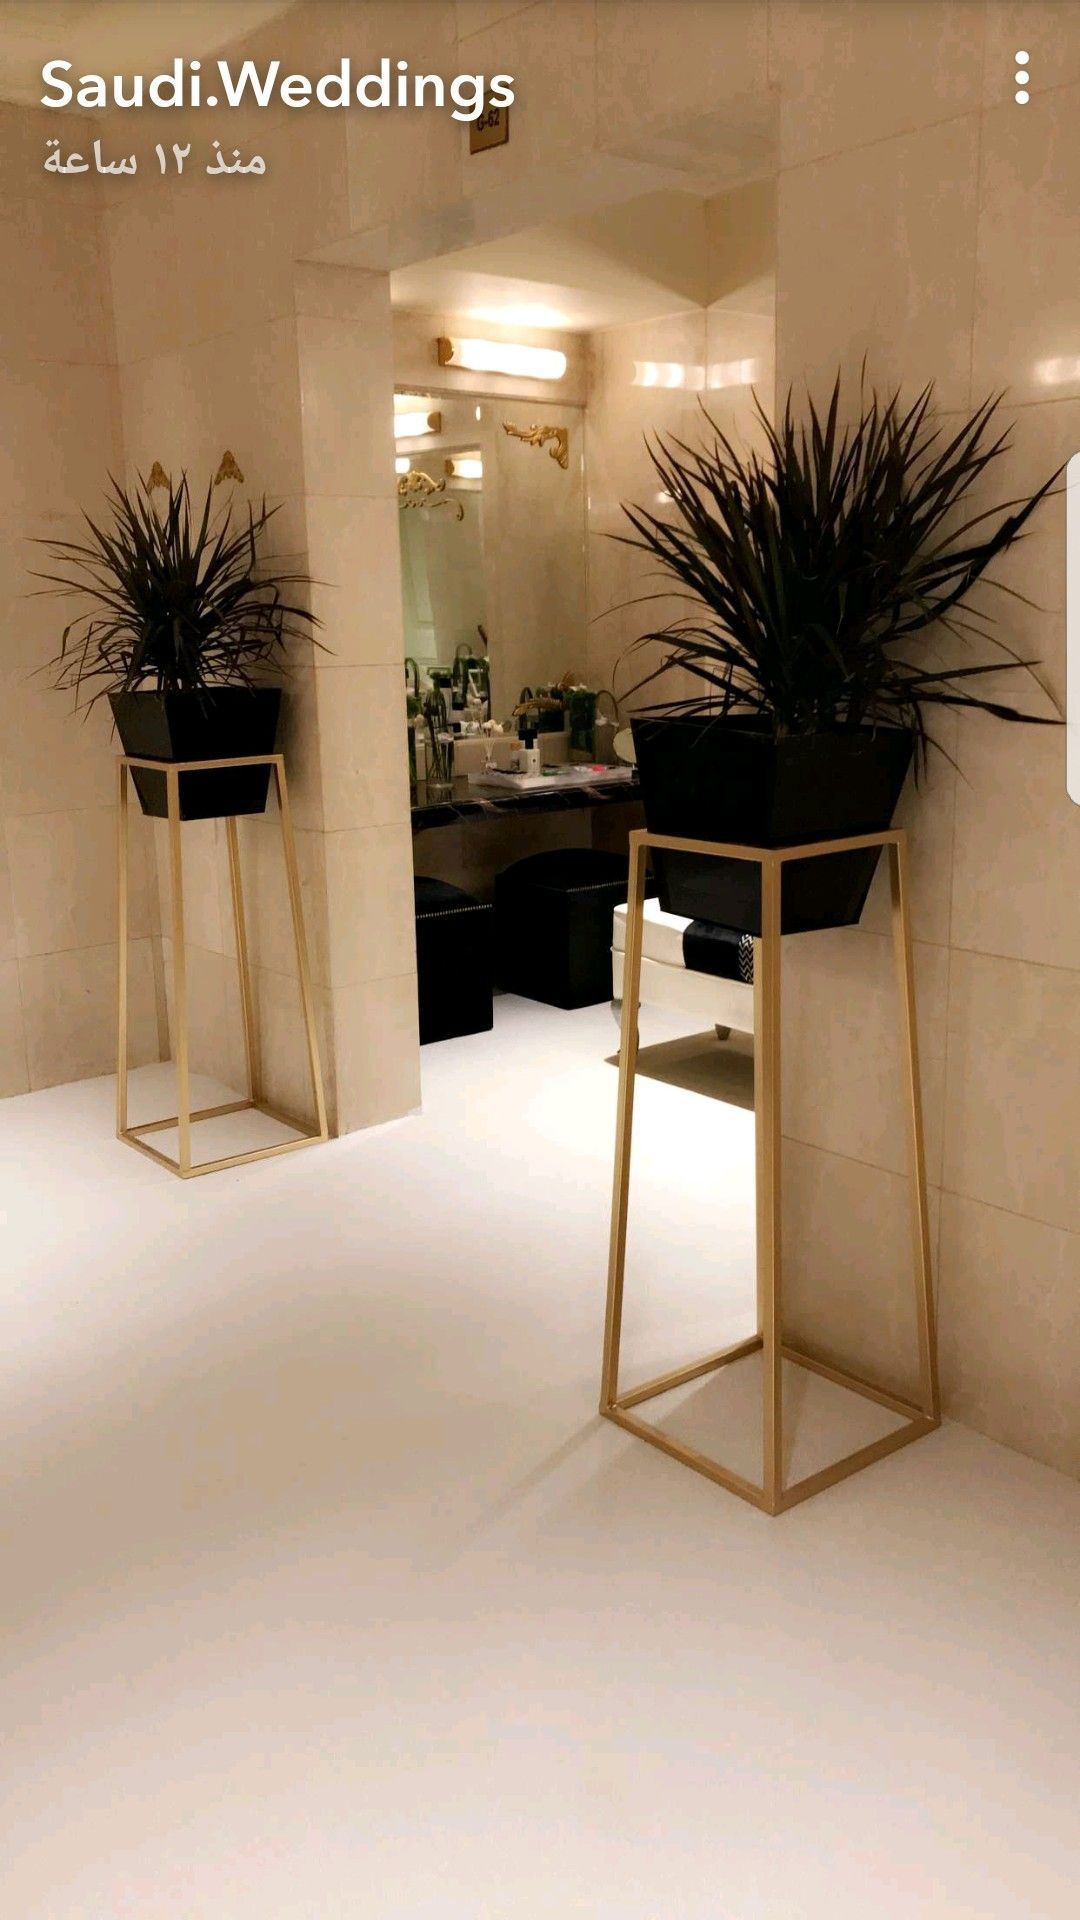 I Like The Stands I Should Look To See How We Can Make Them For My House Great Deco Pieces Table Decor Living Room Home Room Design House Furniture Design